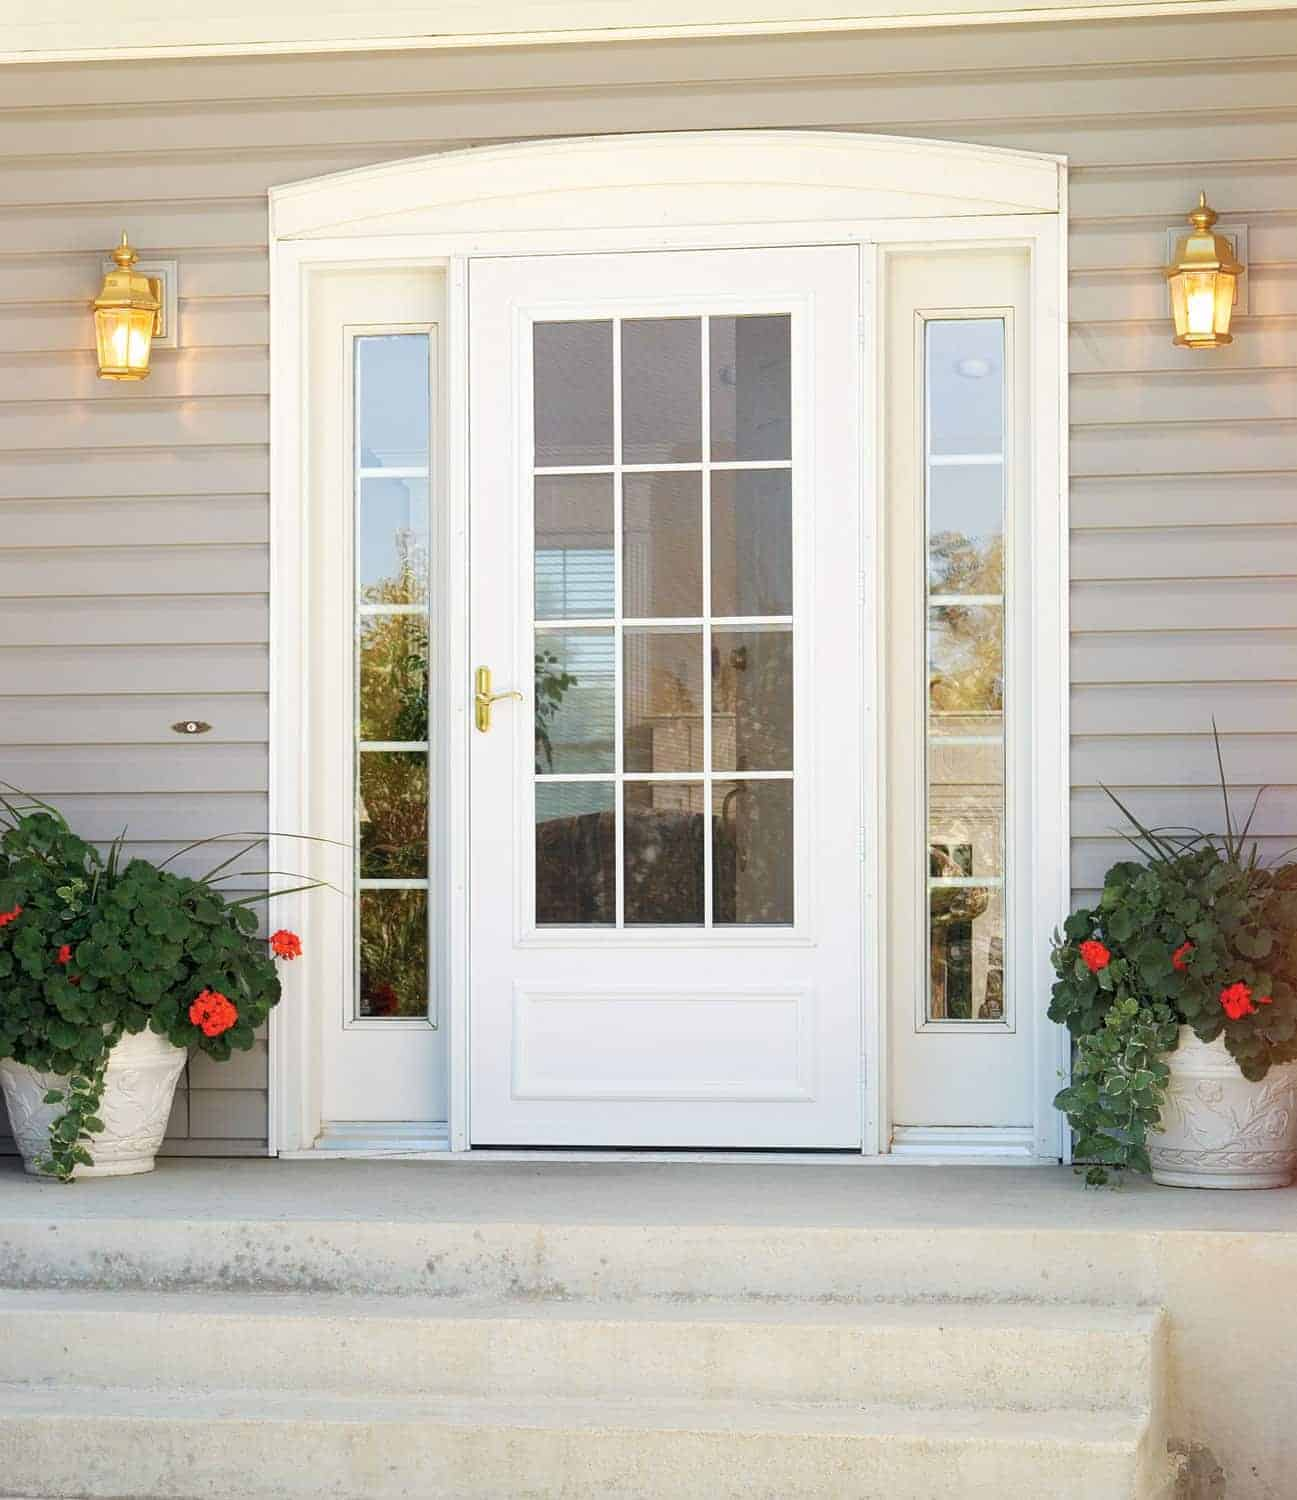 Glass Storm Doors : Window installation storm